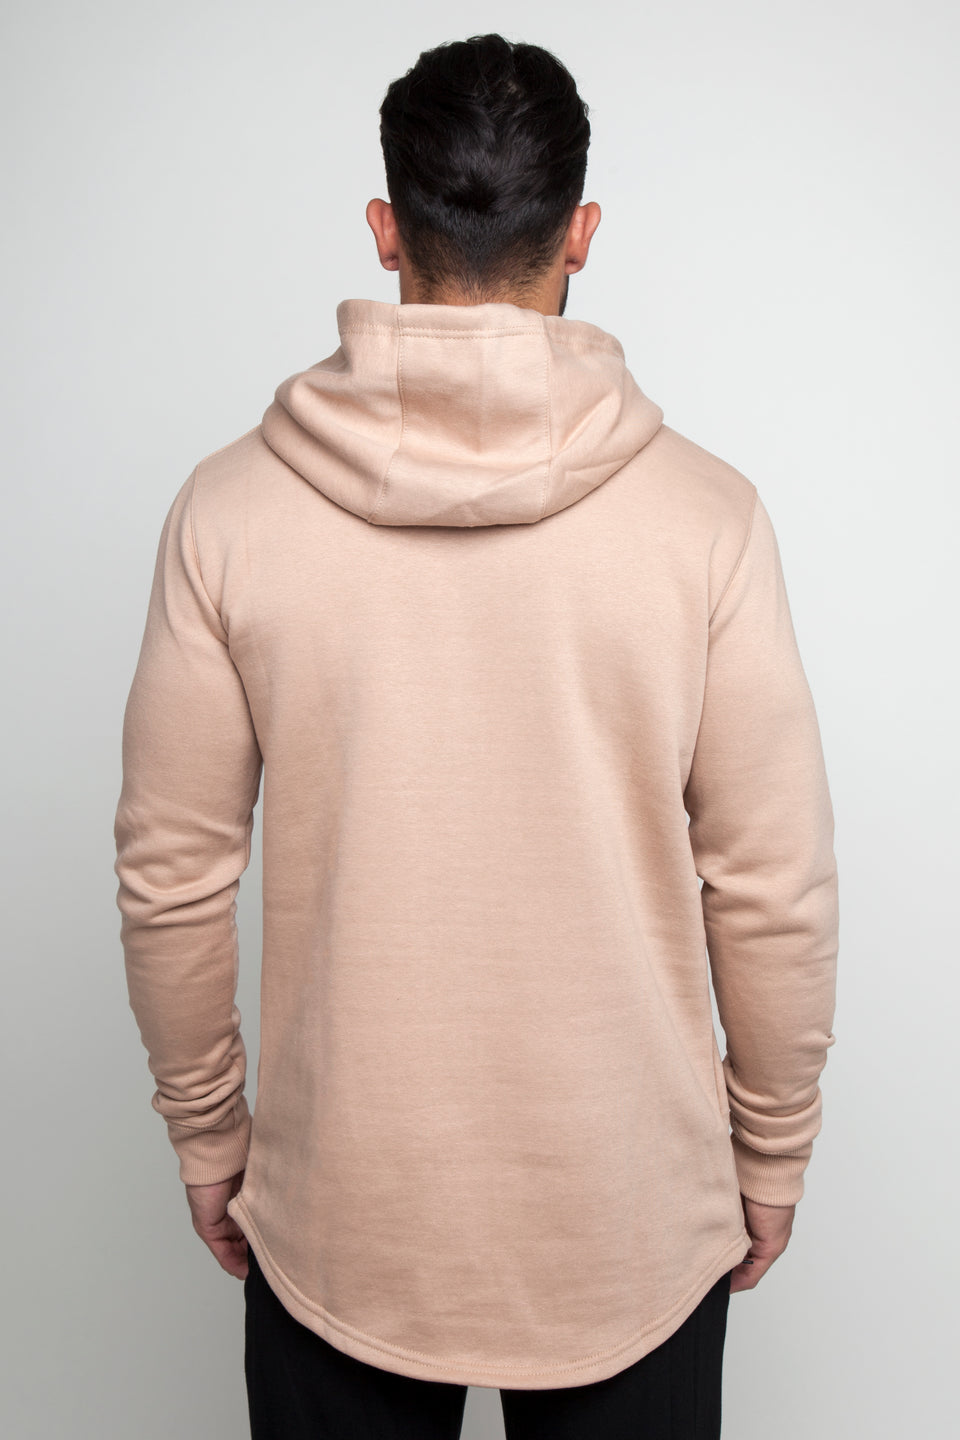 Vypex creed fitted mens gym hoodie in sand beige